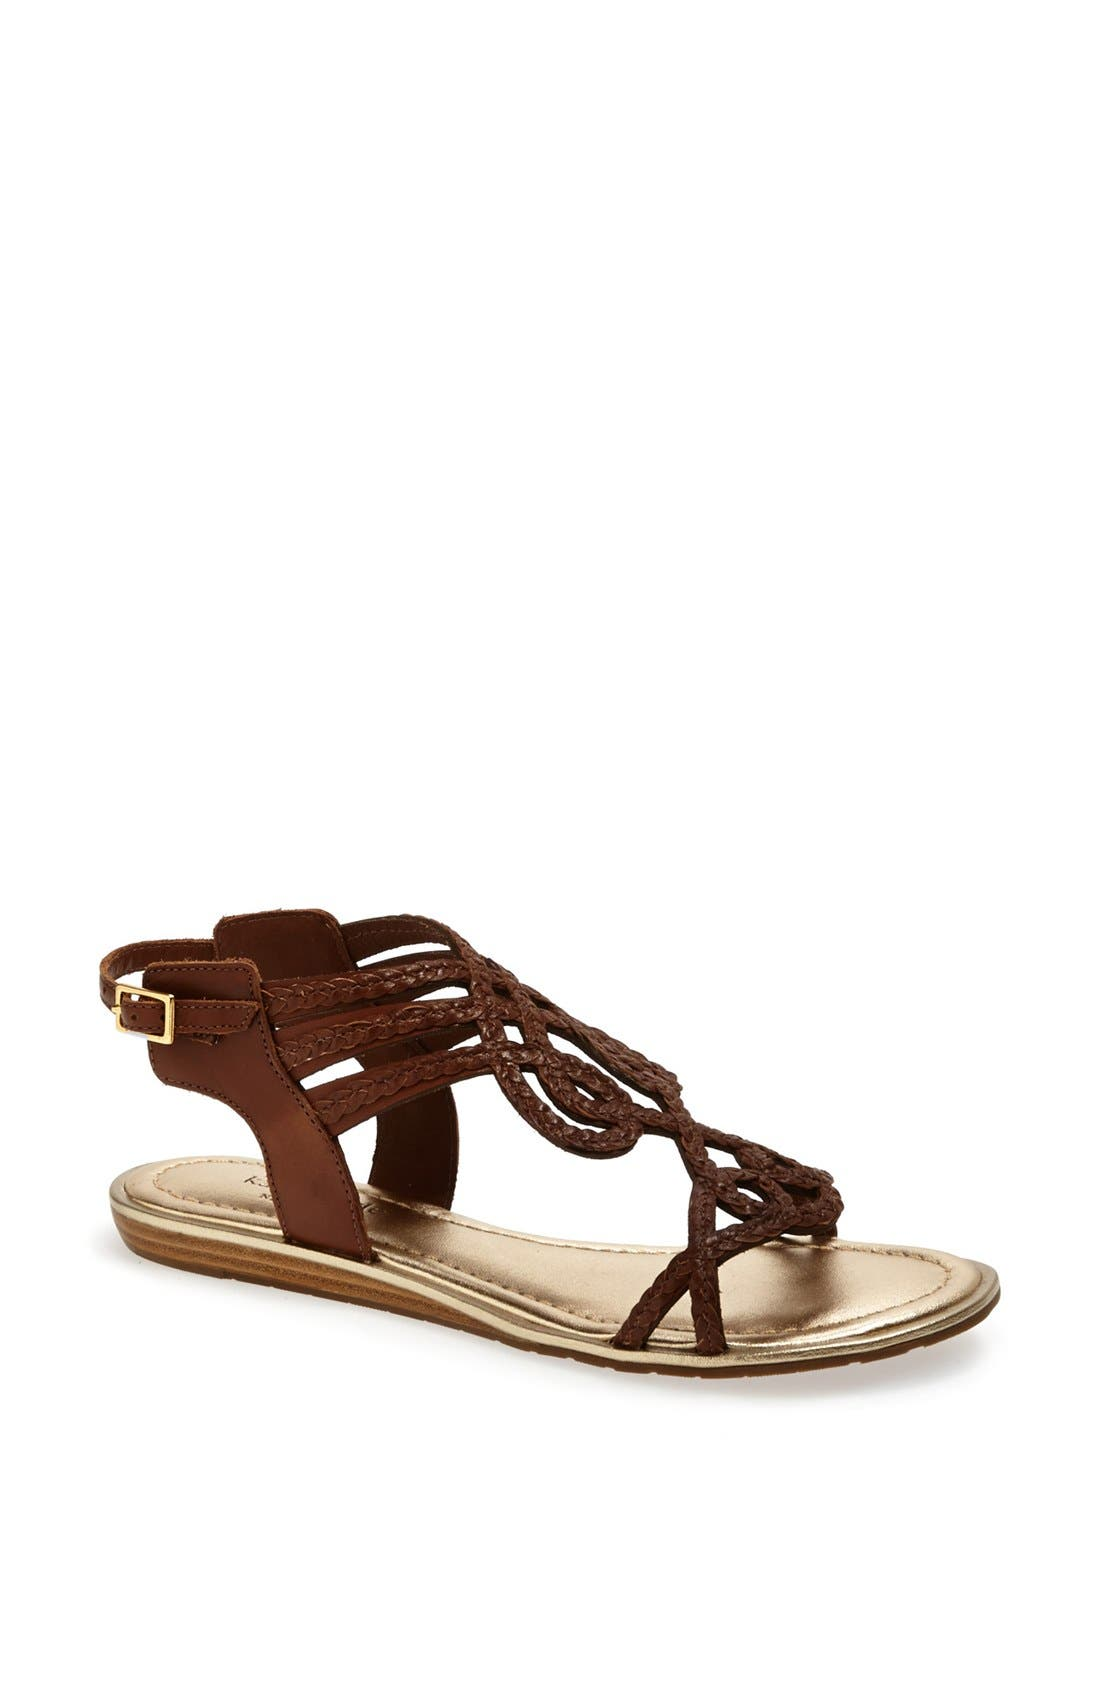 Main Image - kate spade new york 'ayn' sandal